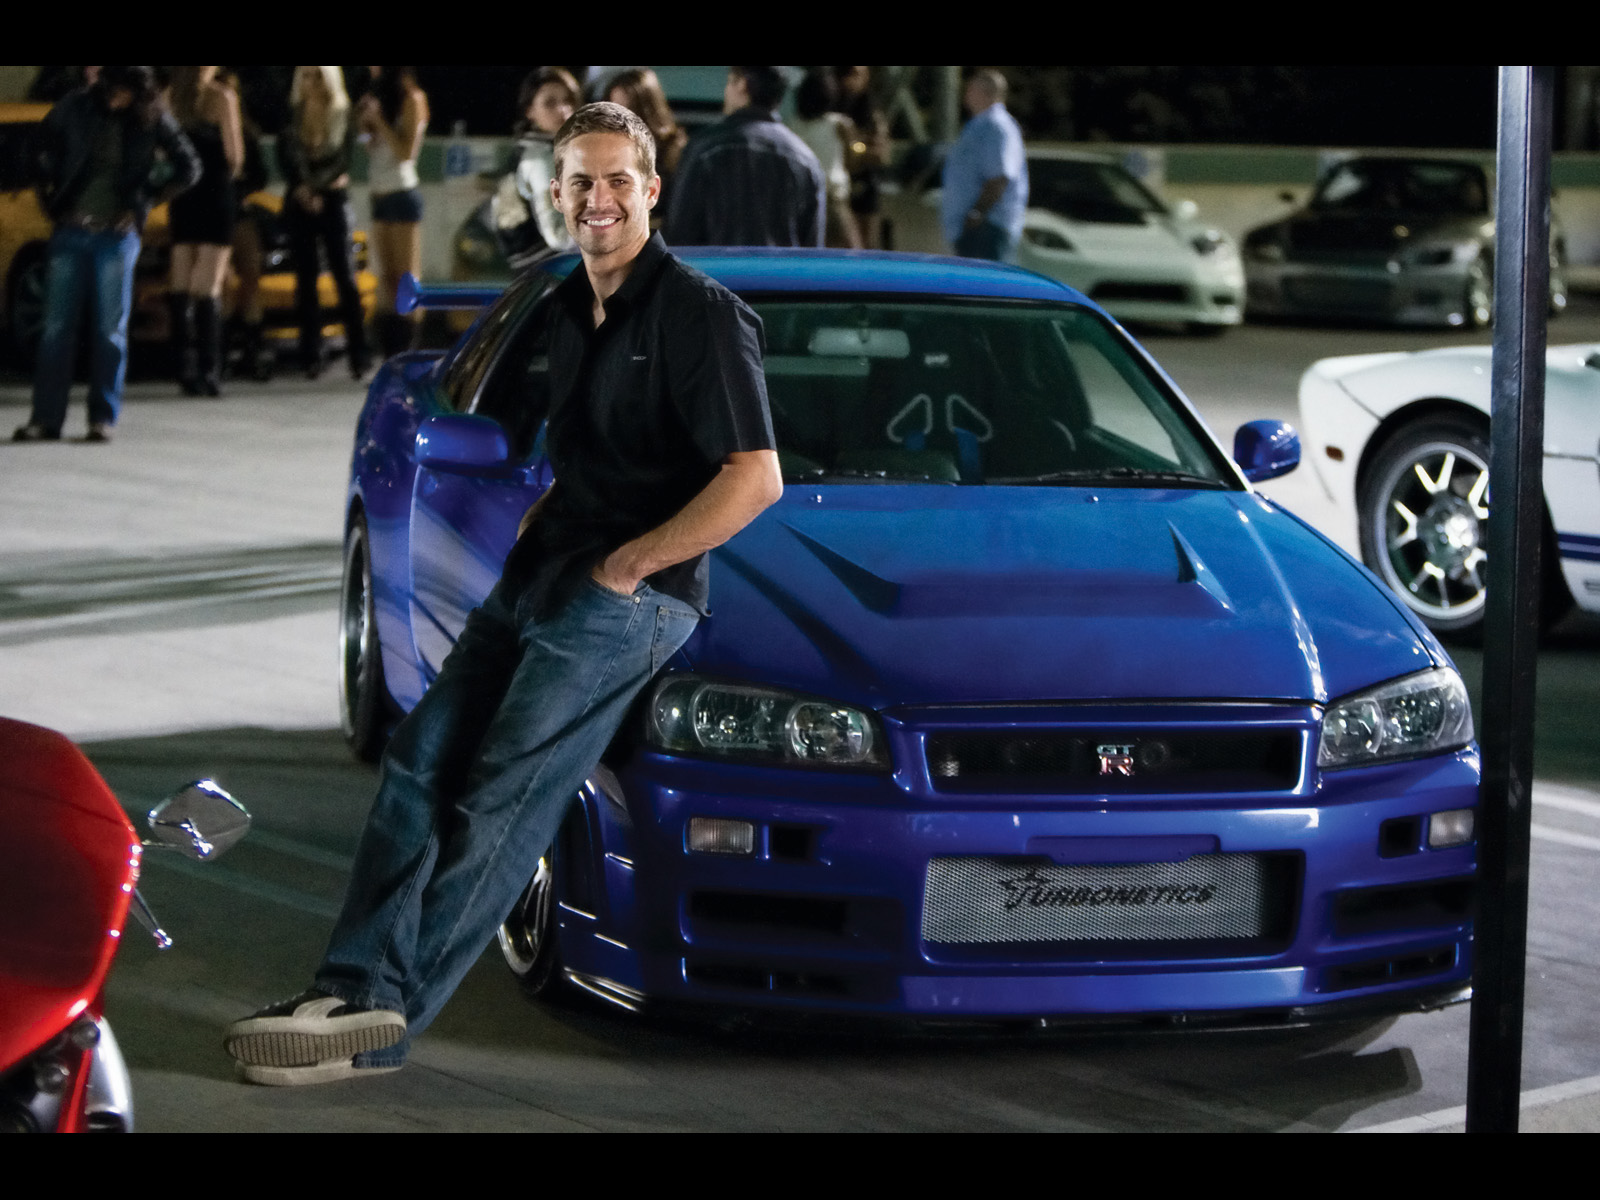 cars fast and furious - photo #26